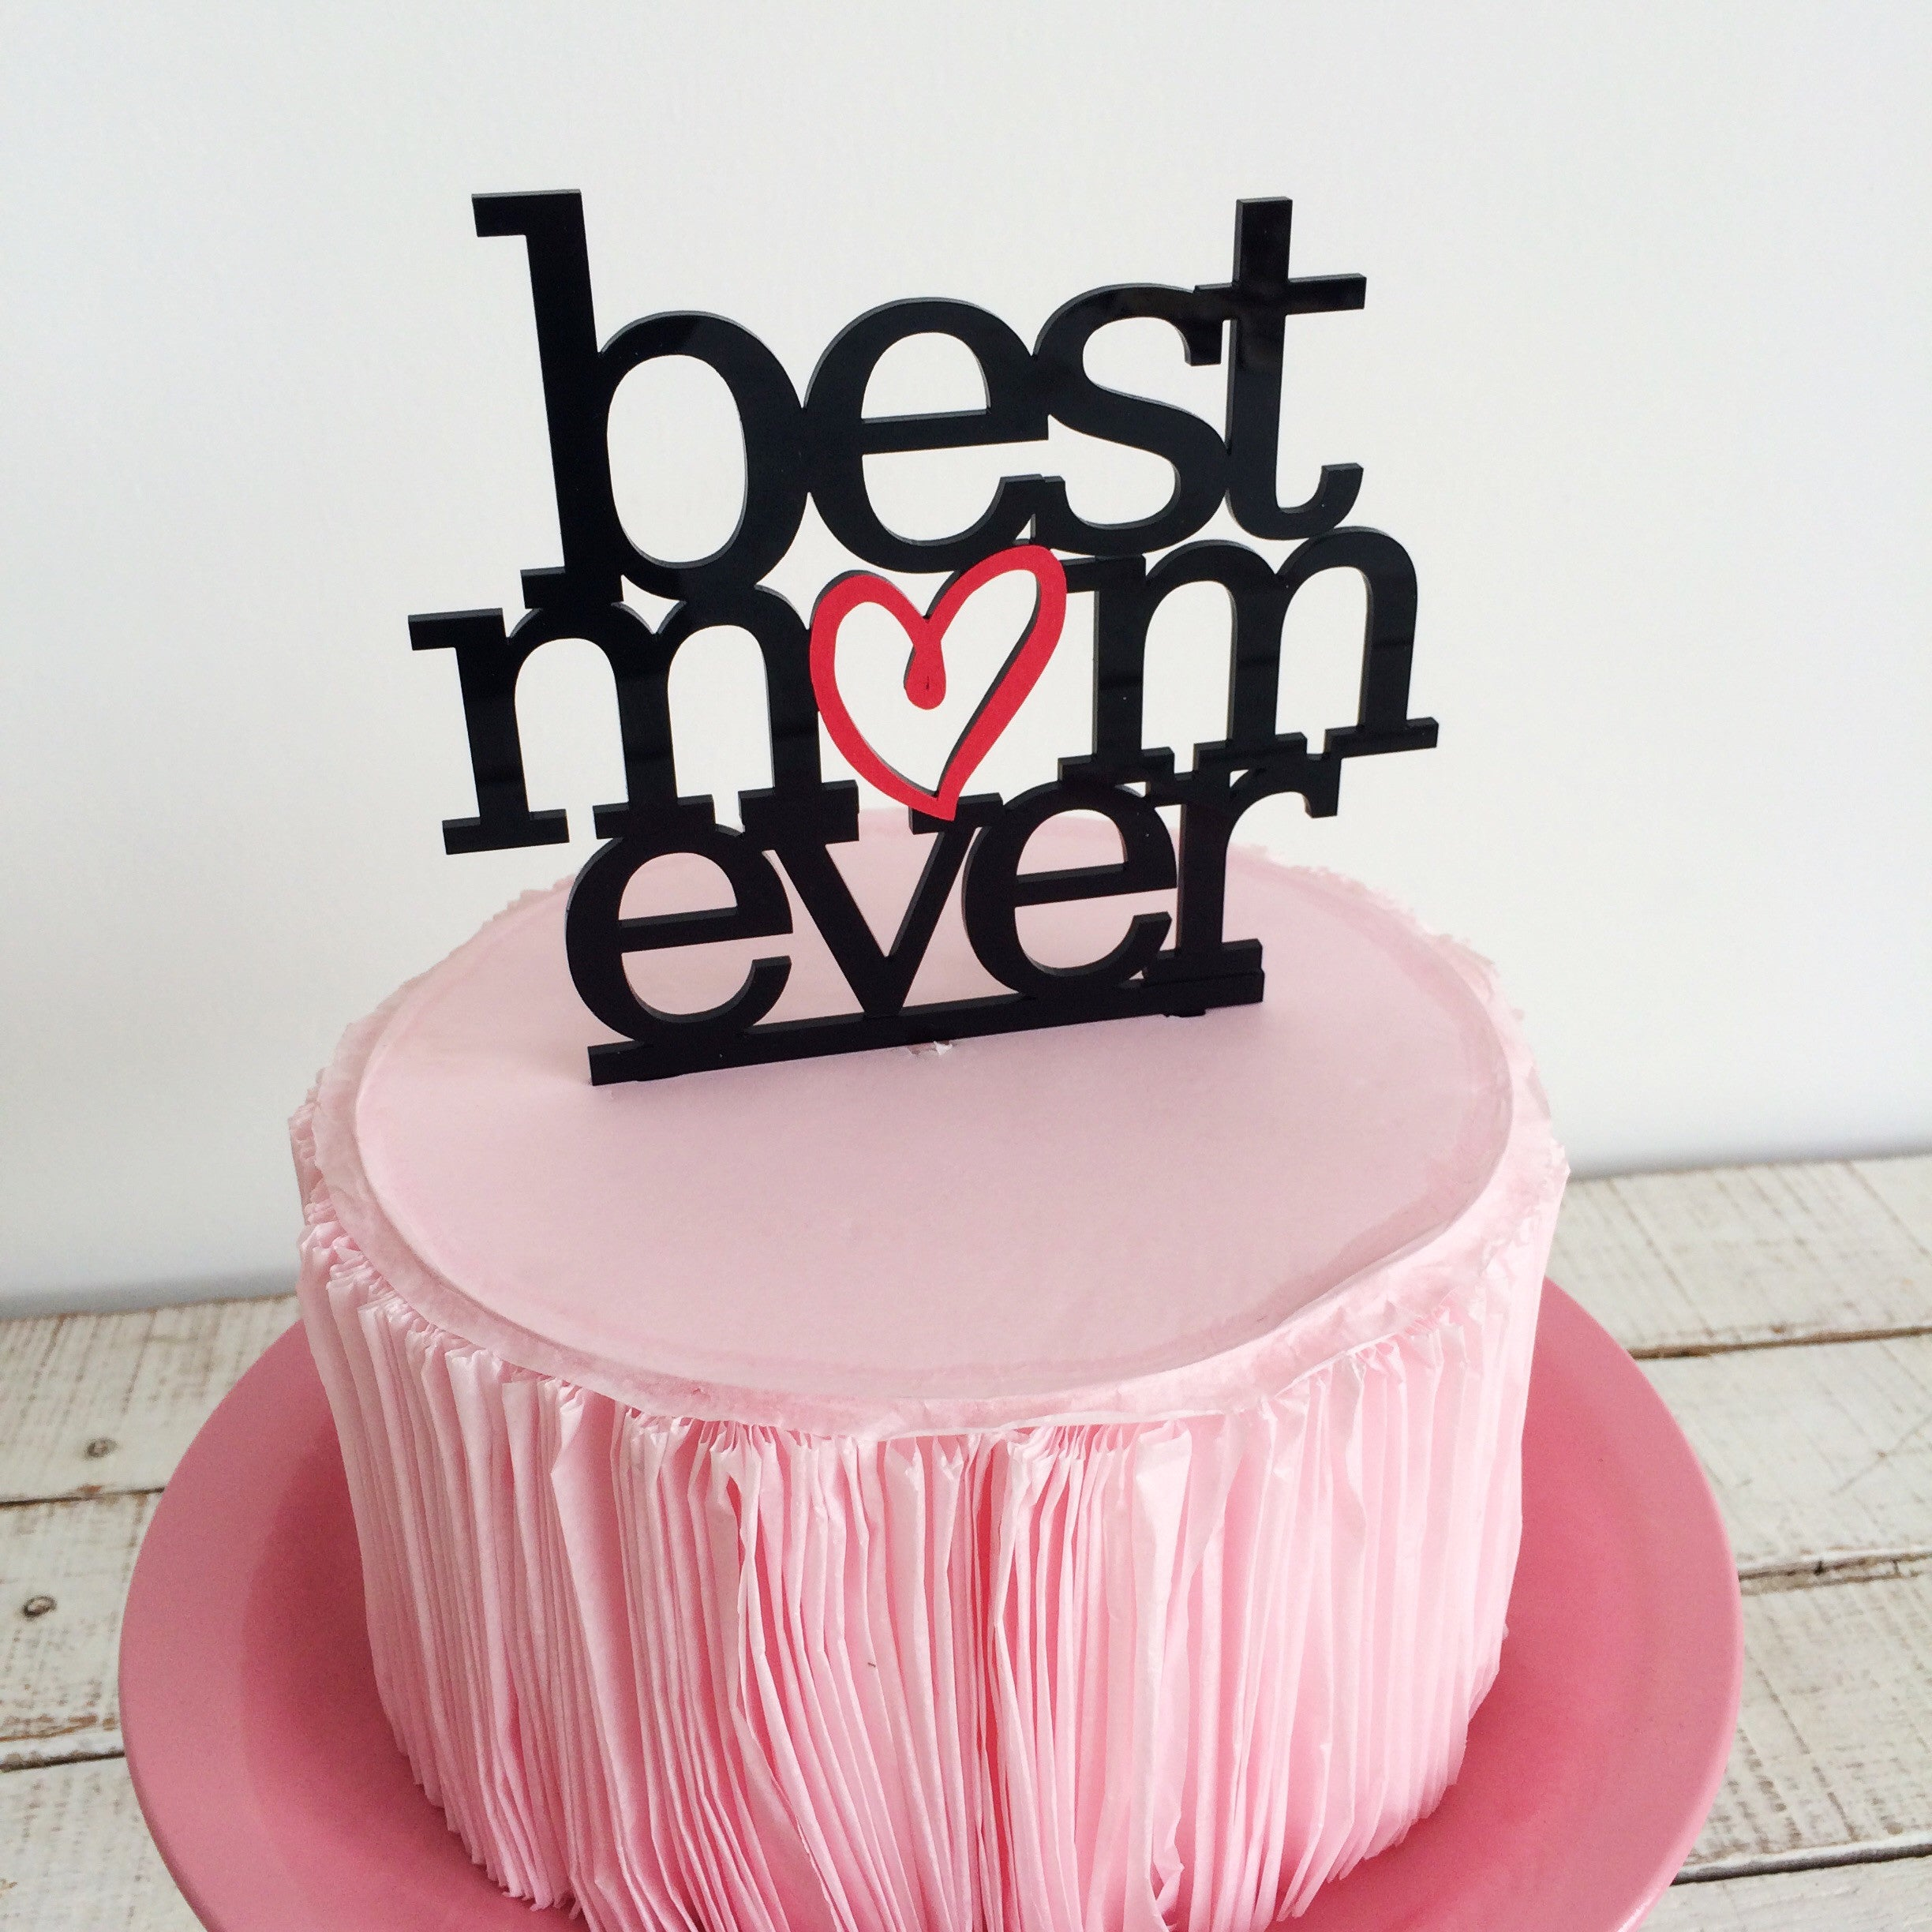 Best Mom Ever Cake Topper akudankraf